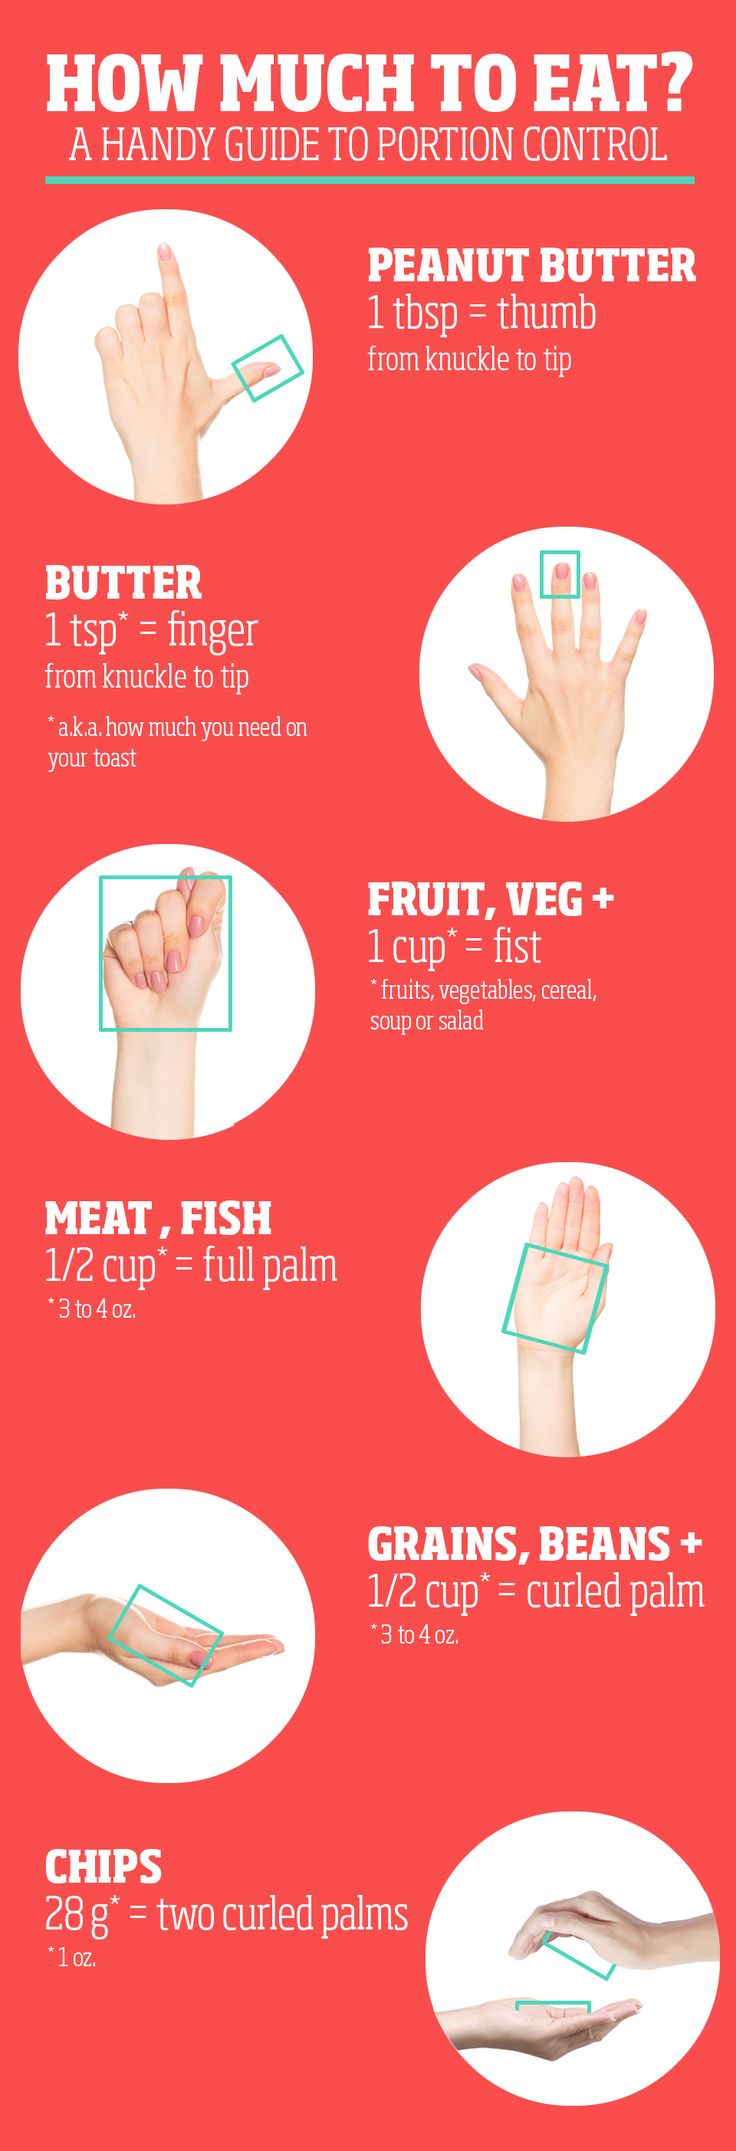 How to keep your portions in check using just your hand #hack #dieting #nutrition